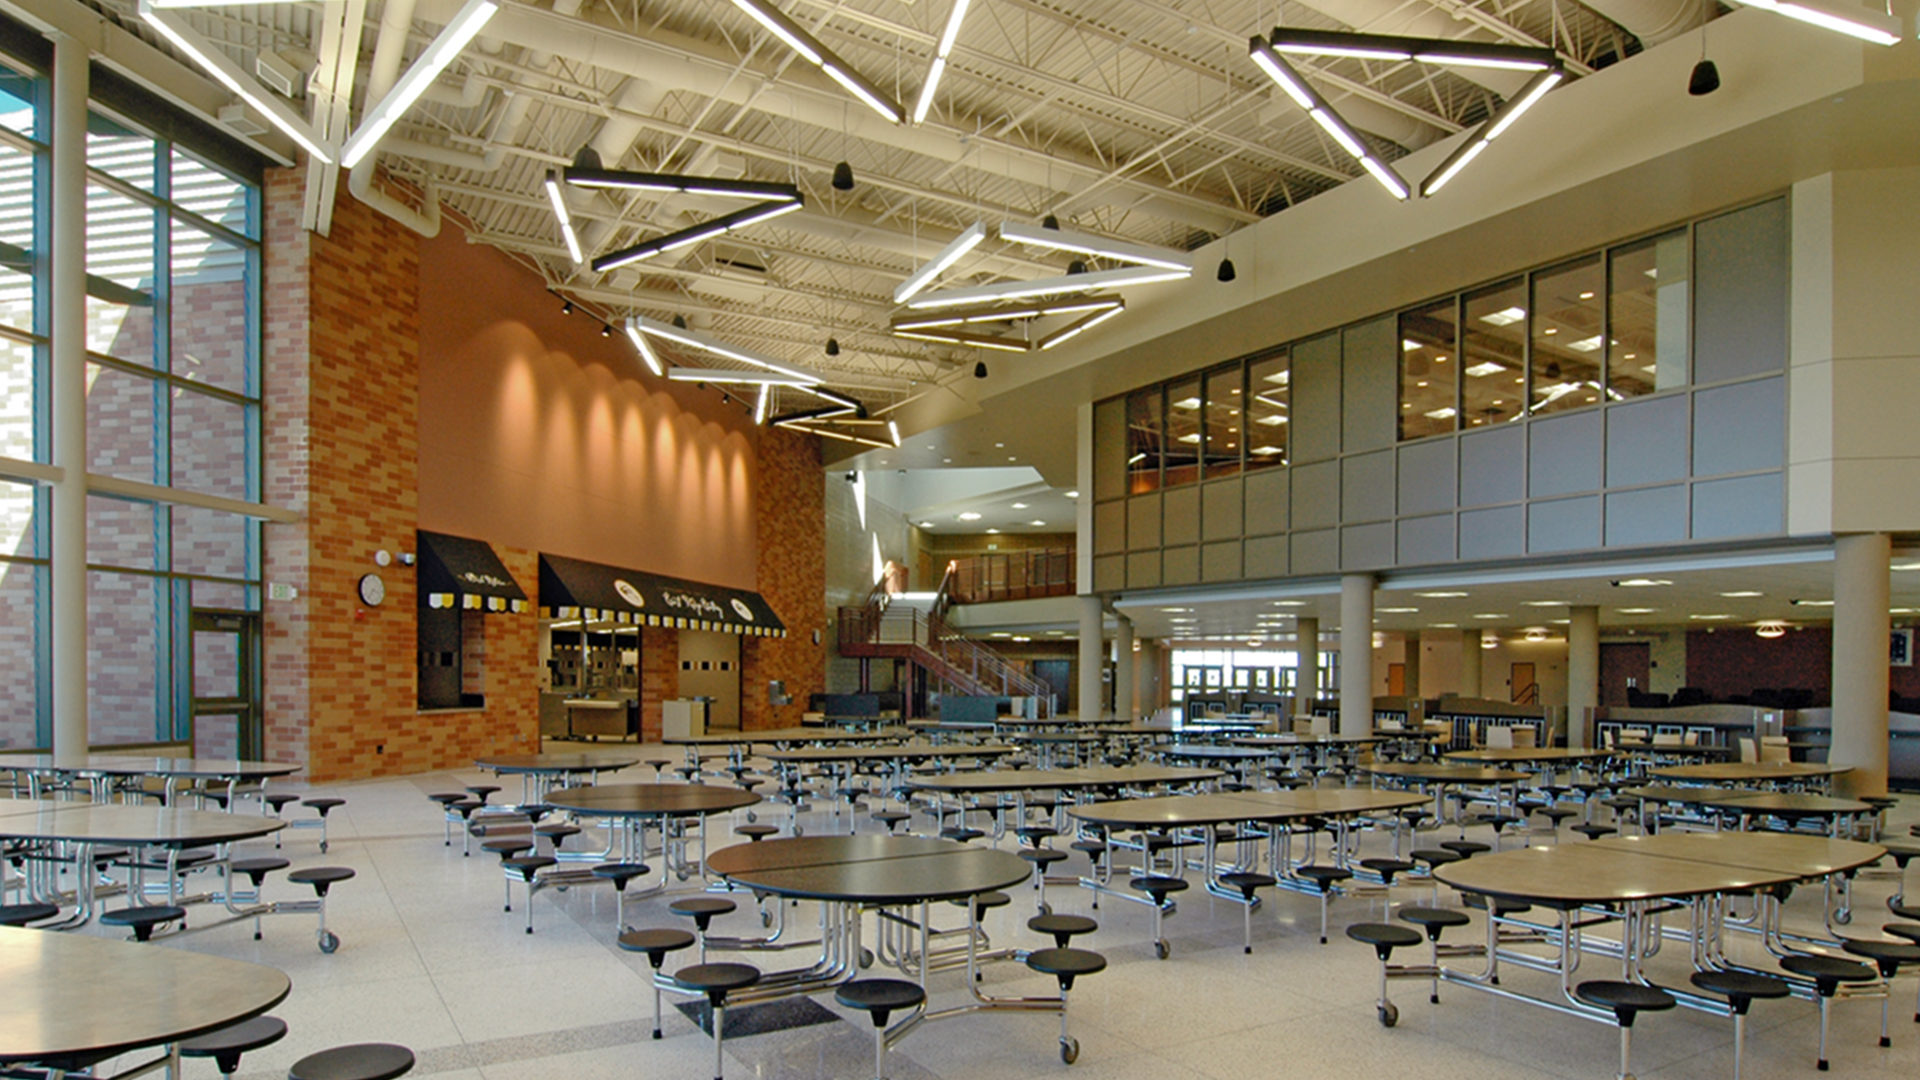 East Ridge High School Vaulted Ceiling Cafeteria